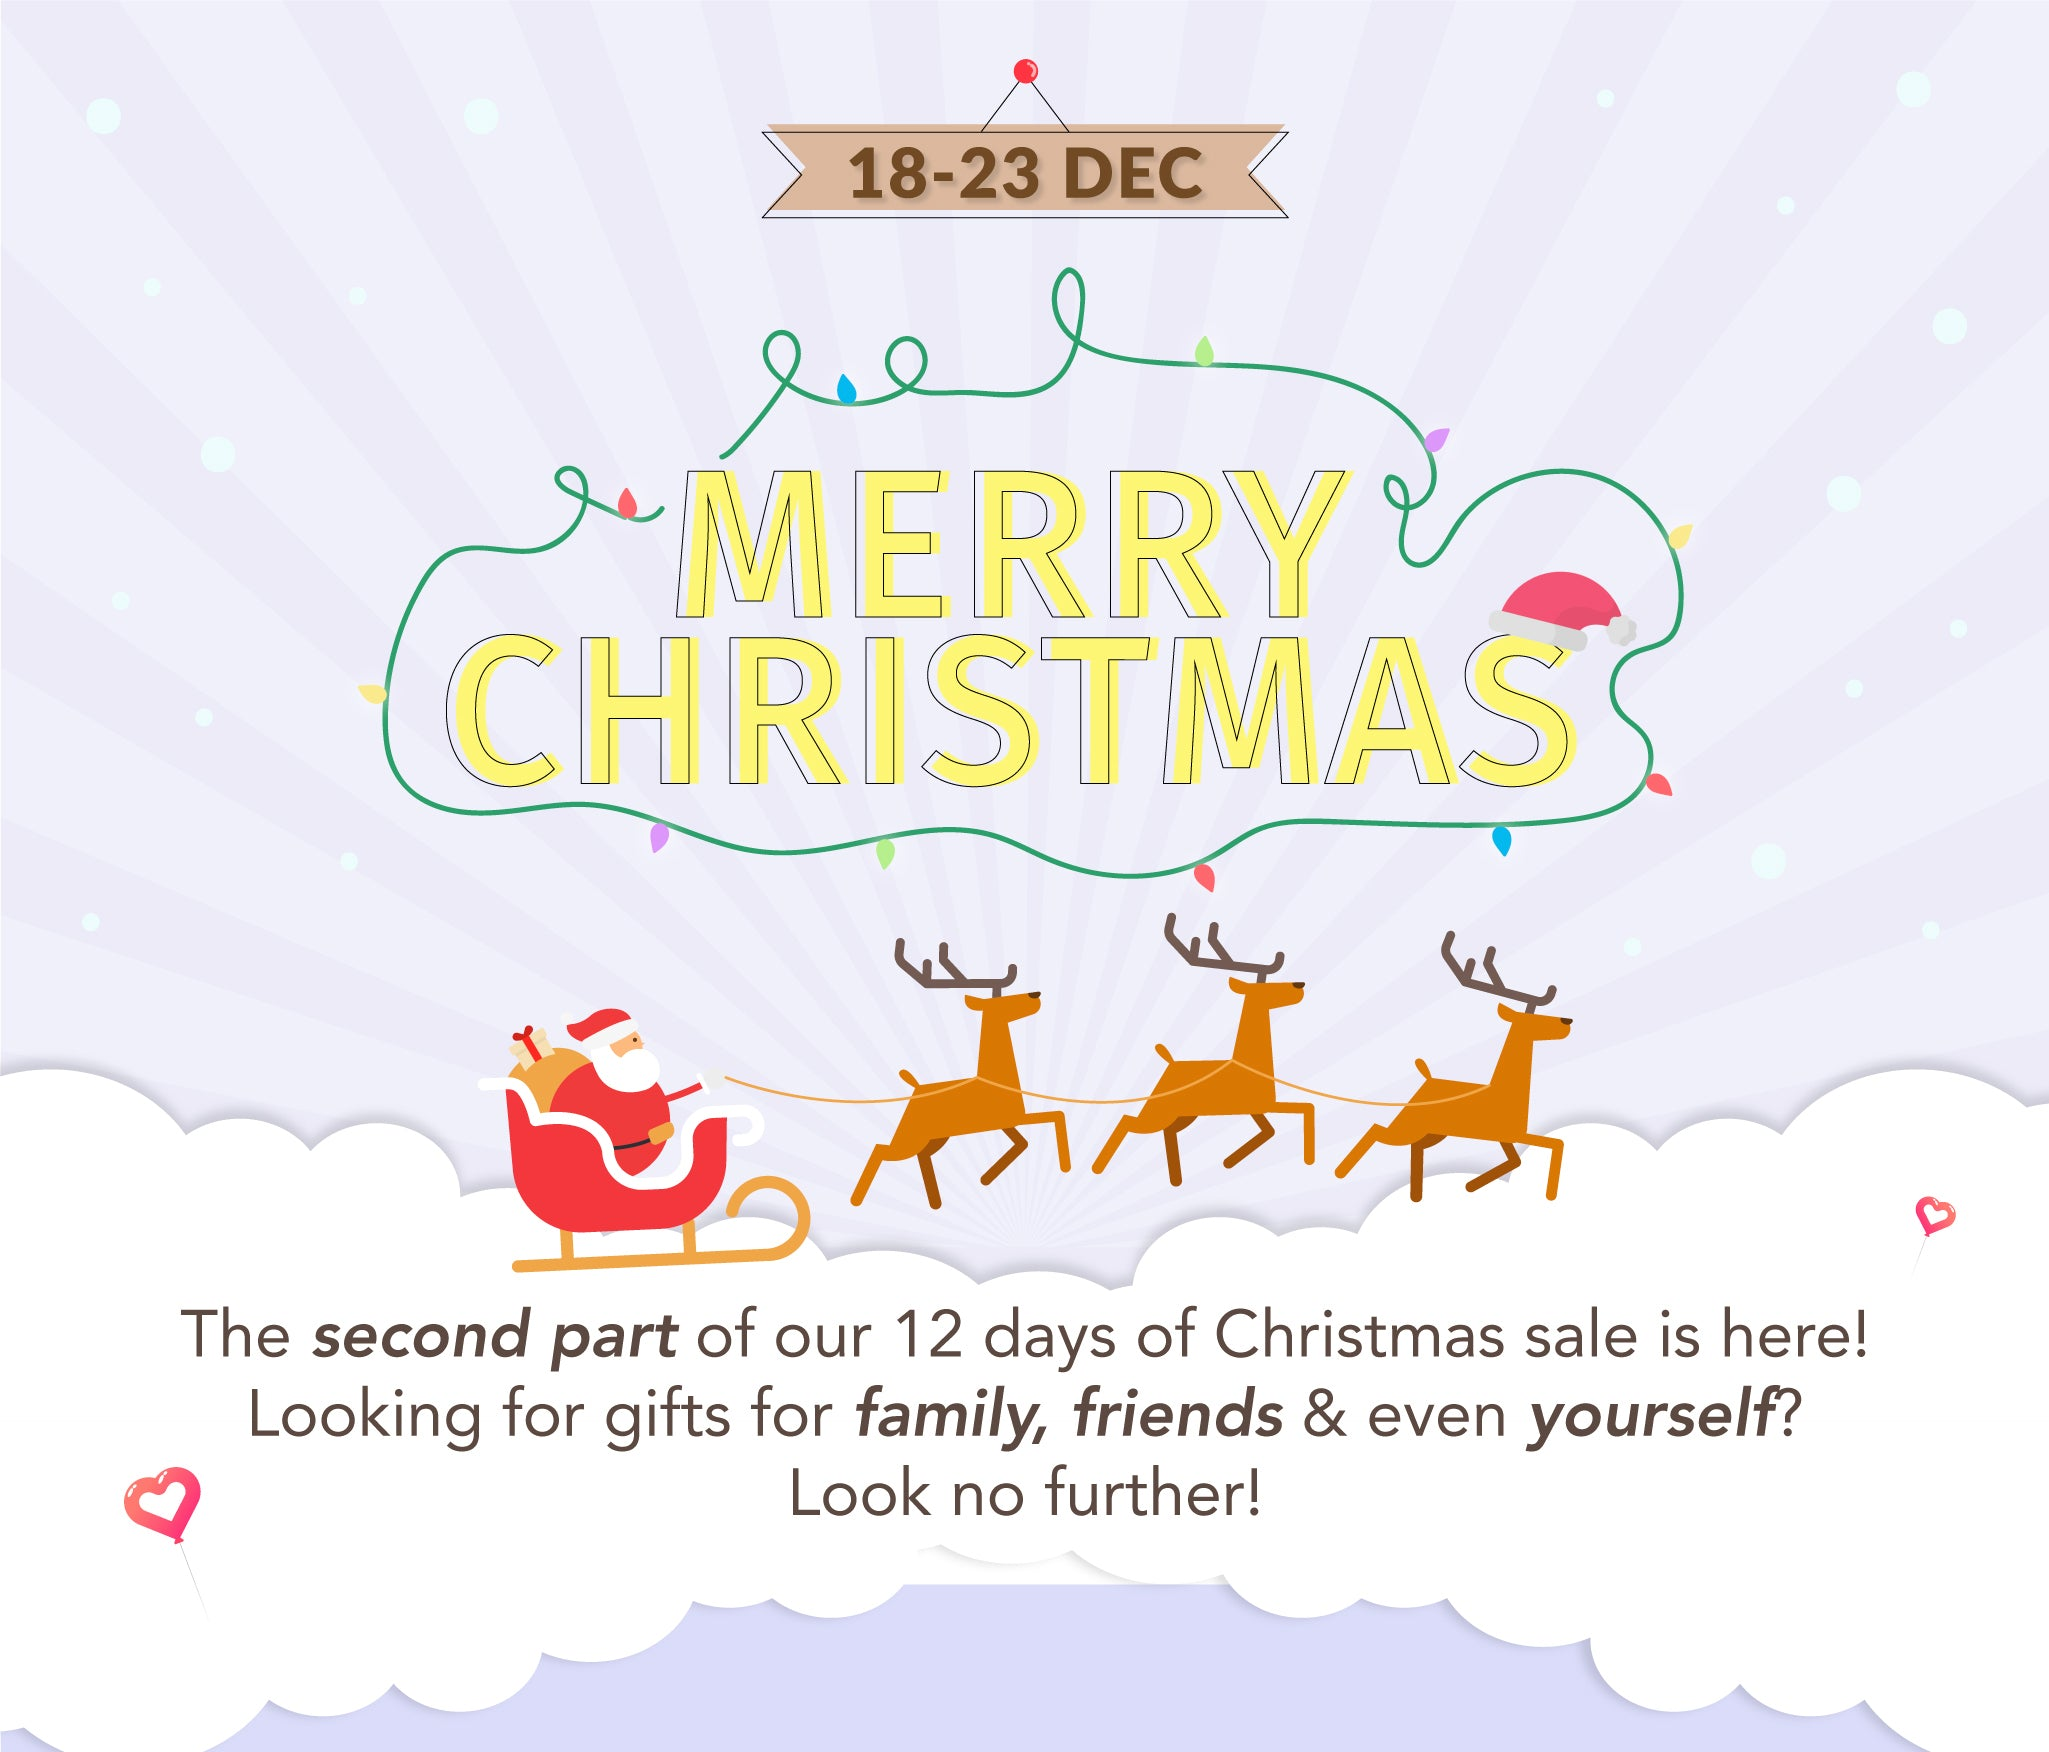 Christmas Sale Part 2